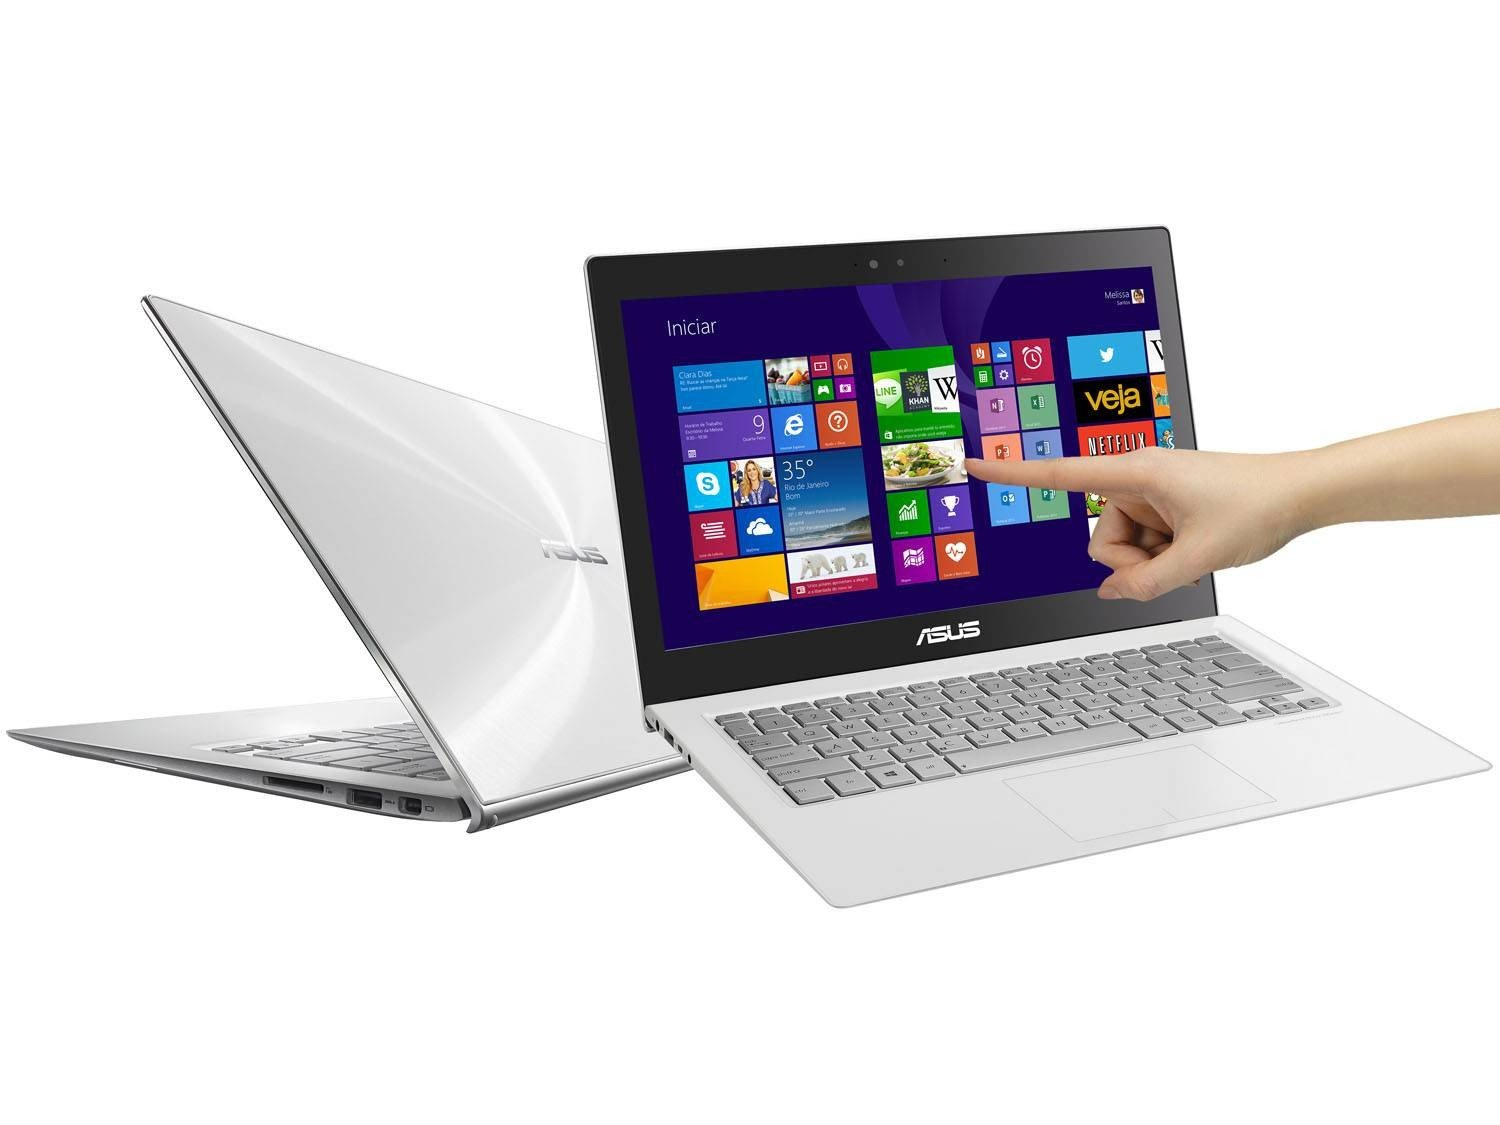 notebook-ultrabook-ou-tablet